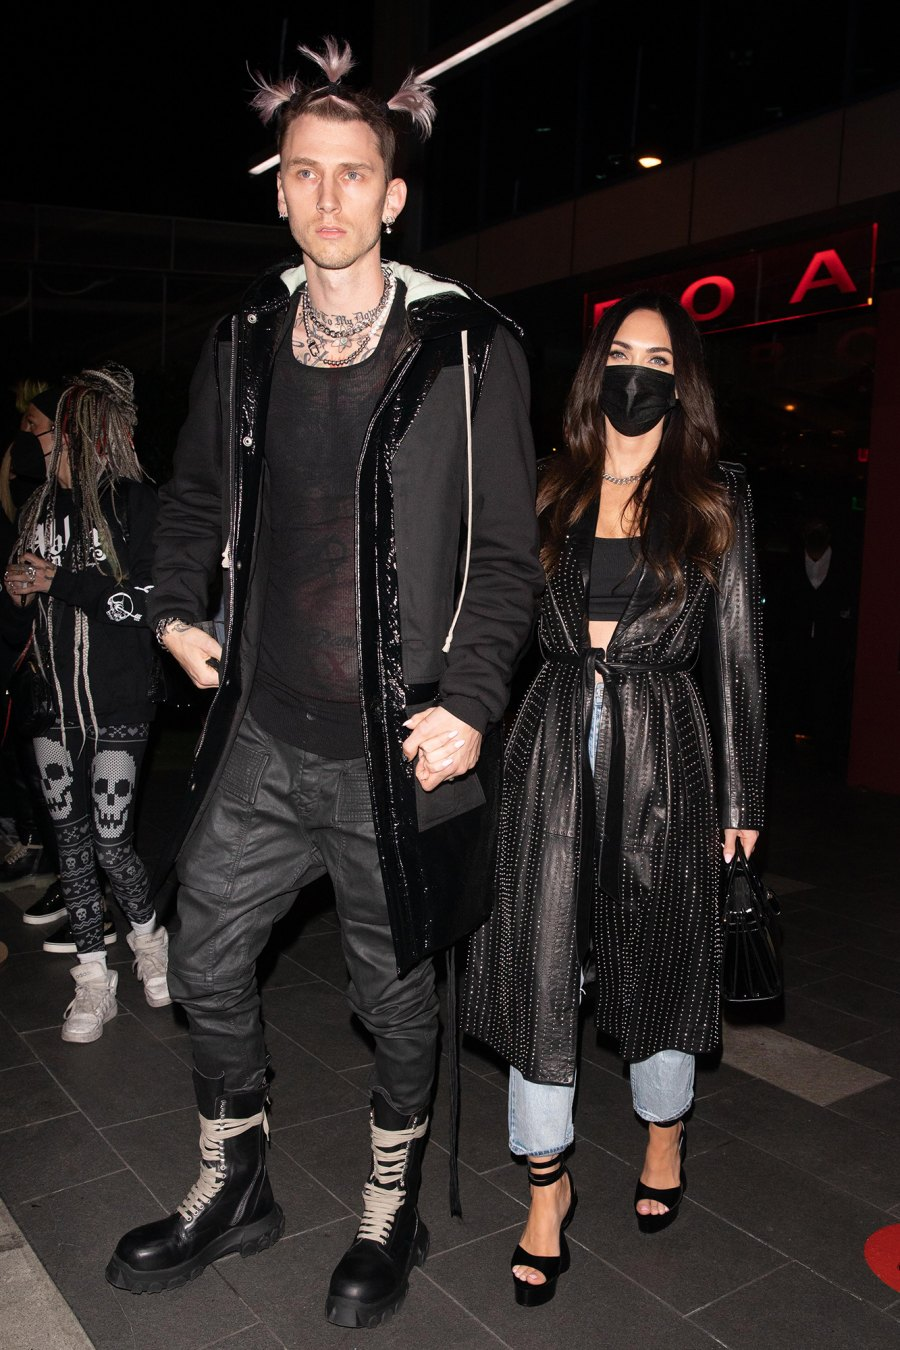 Megan Fox and Machine Gun Kelly Double Date With Avril Lavigne and Mod Sun